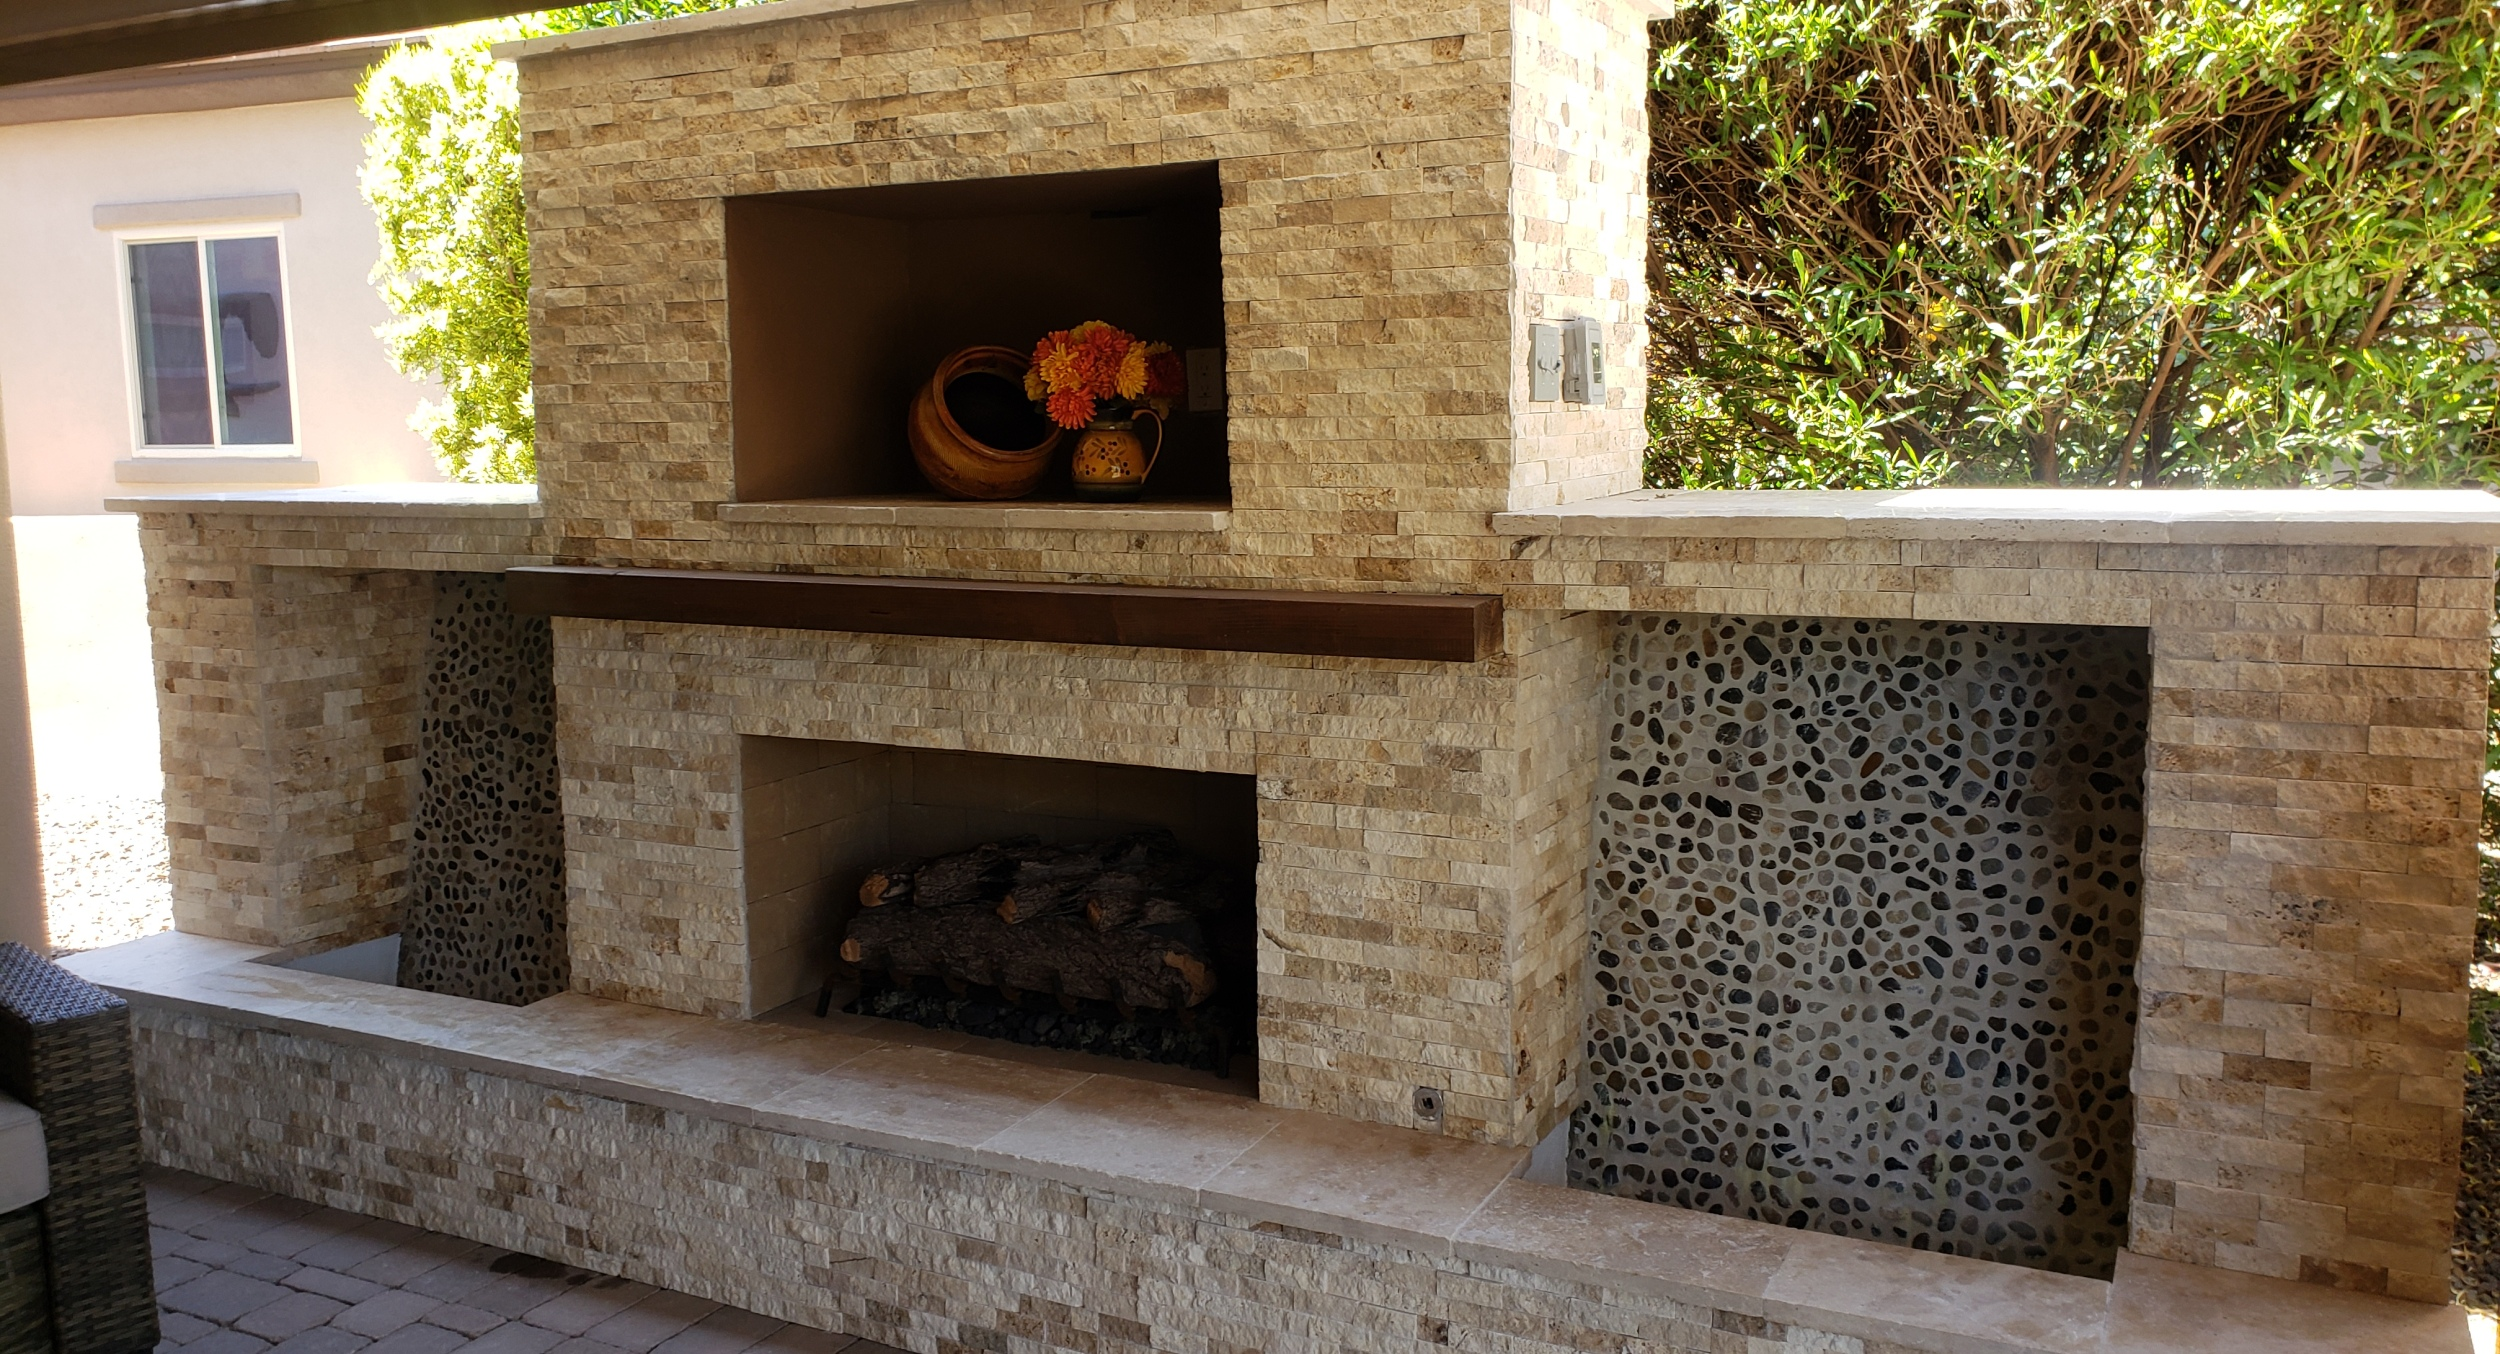 Split-face travertine outdoor fireplace. Peoria, AZ client's had us add twin water wall water features on each side, plus an outdoor TV cabinet above the hearth.